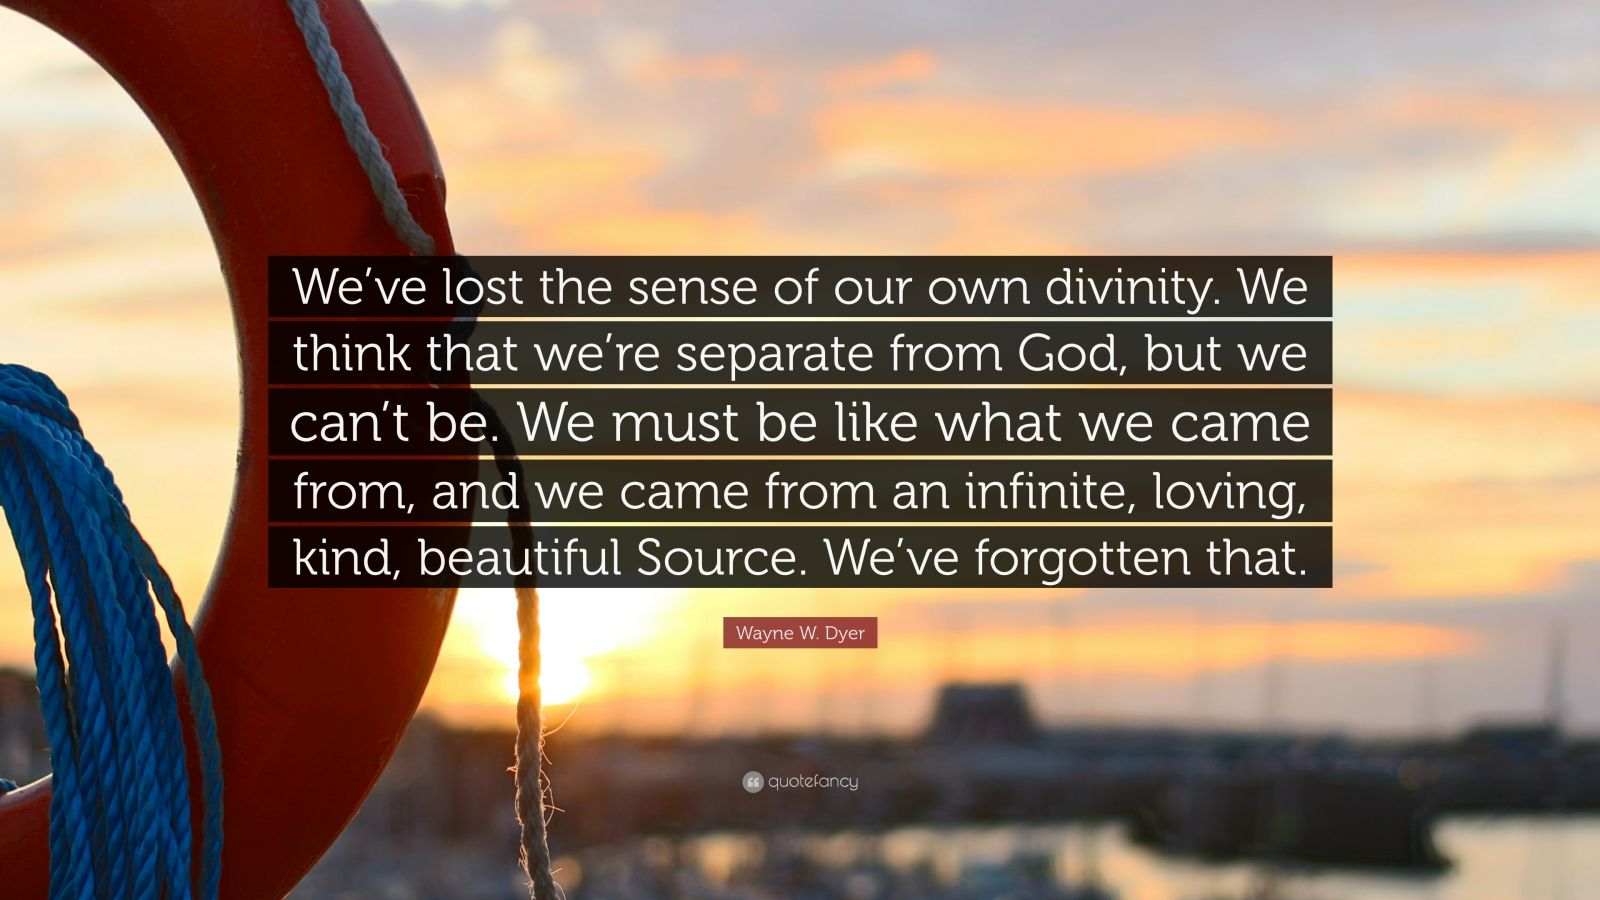 """Wayne W. Dyer Quote: """"We've lost the sense of our own divinity. We think that we're separate from God, but we can't be. We must be like what we came from, and we came from an infinite, loving, kind, beautiful Source. We've forgotten that."""""""